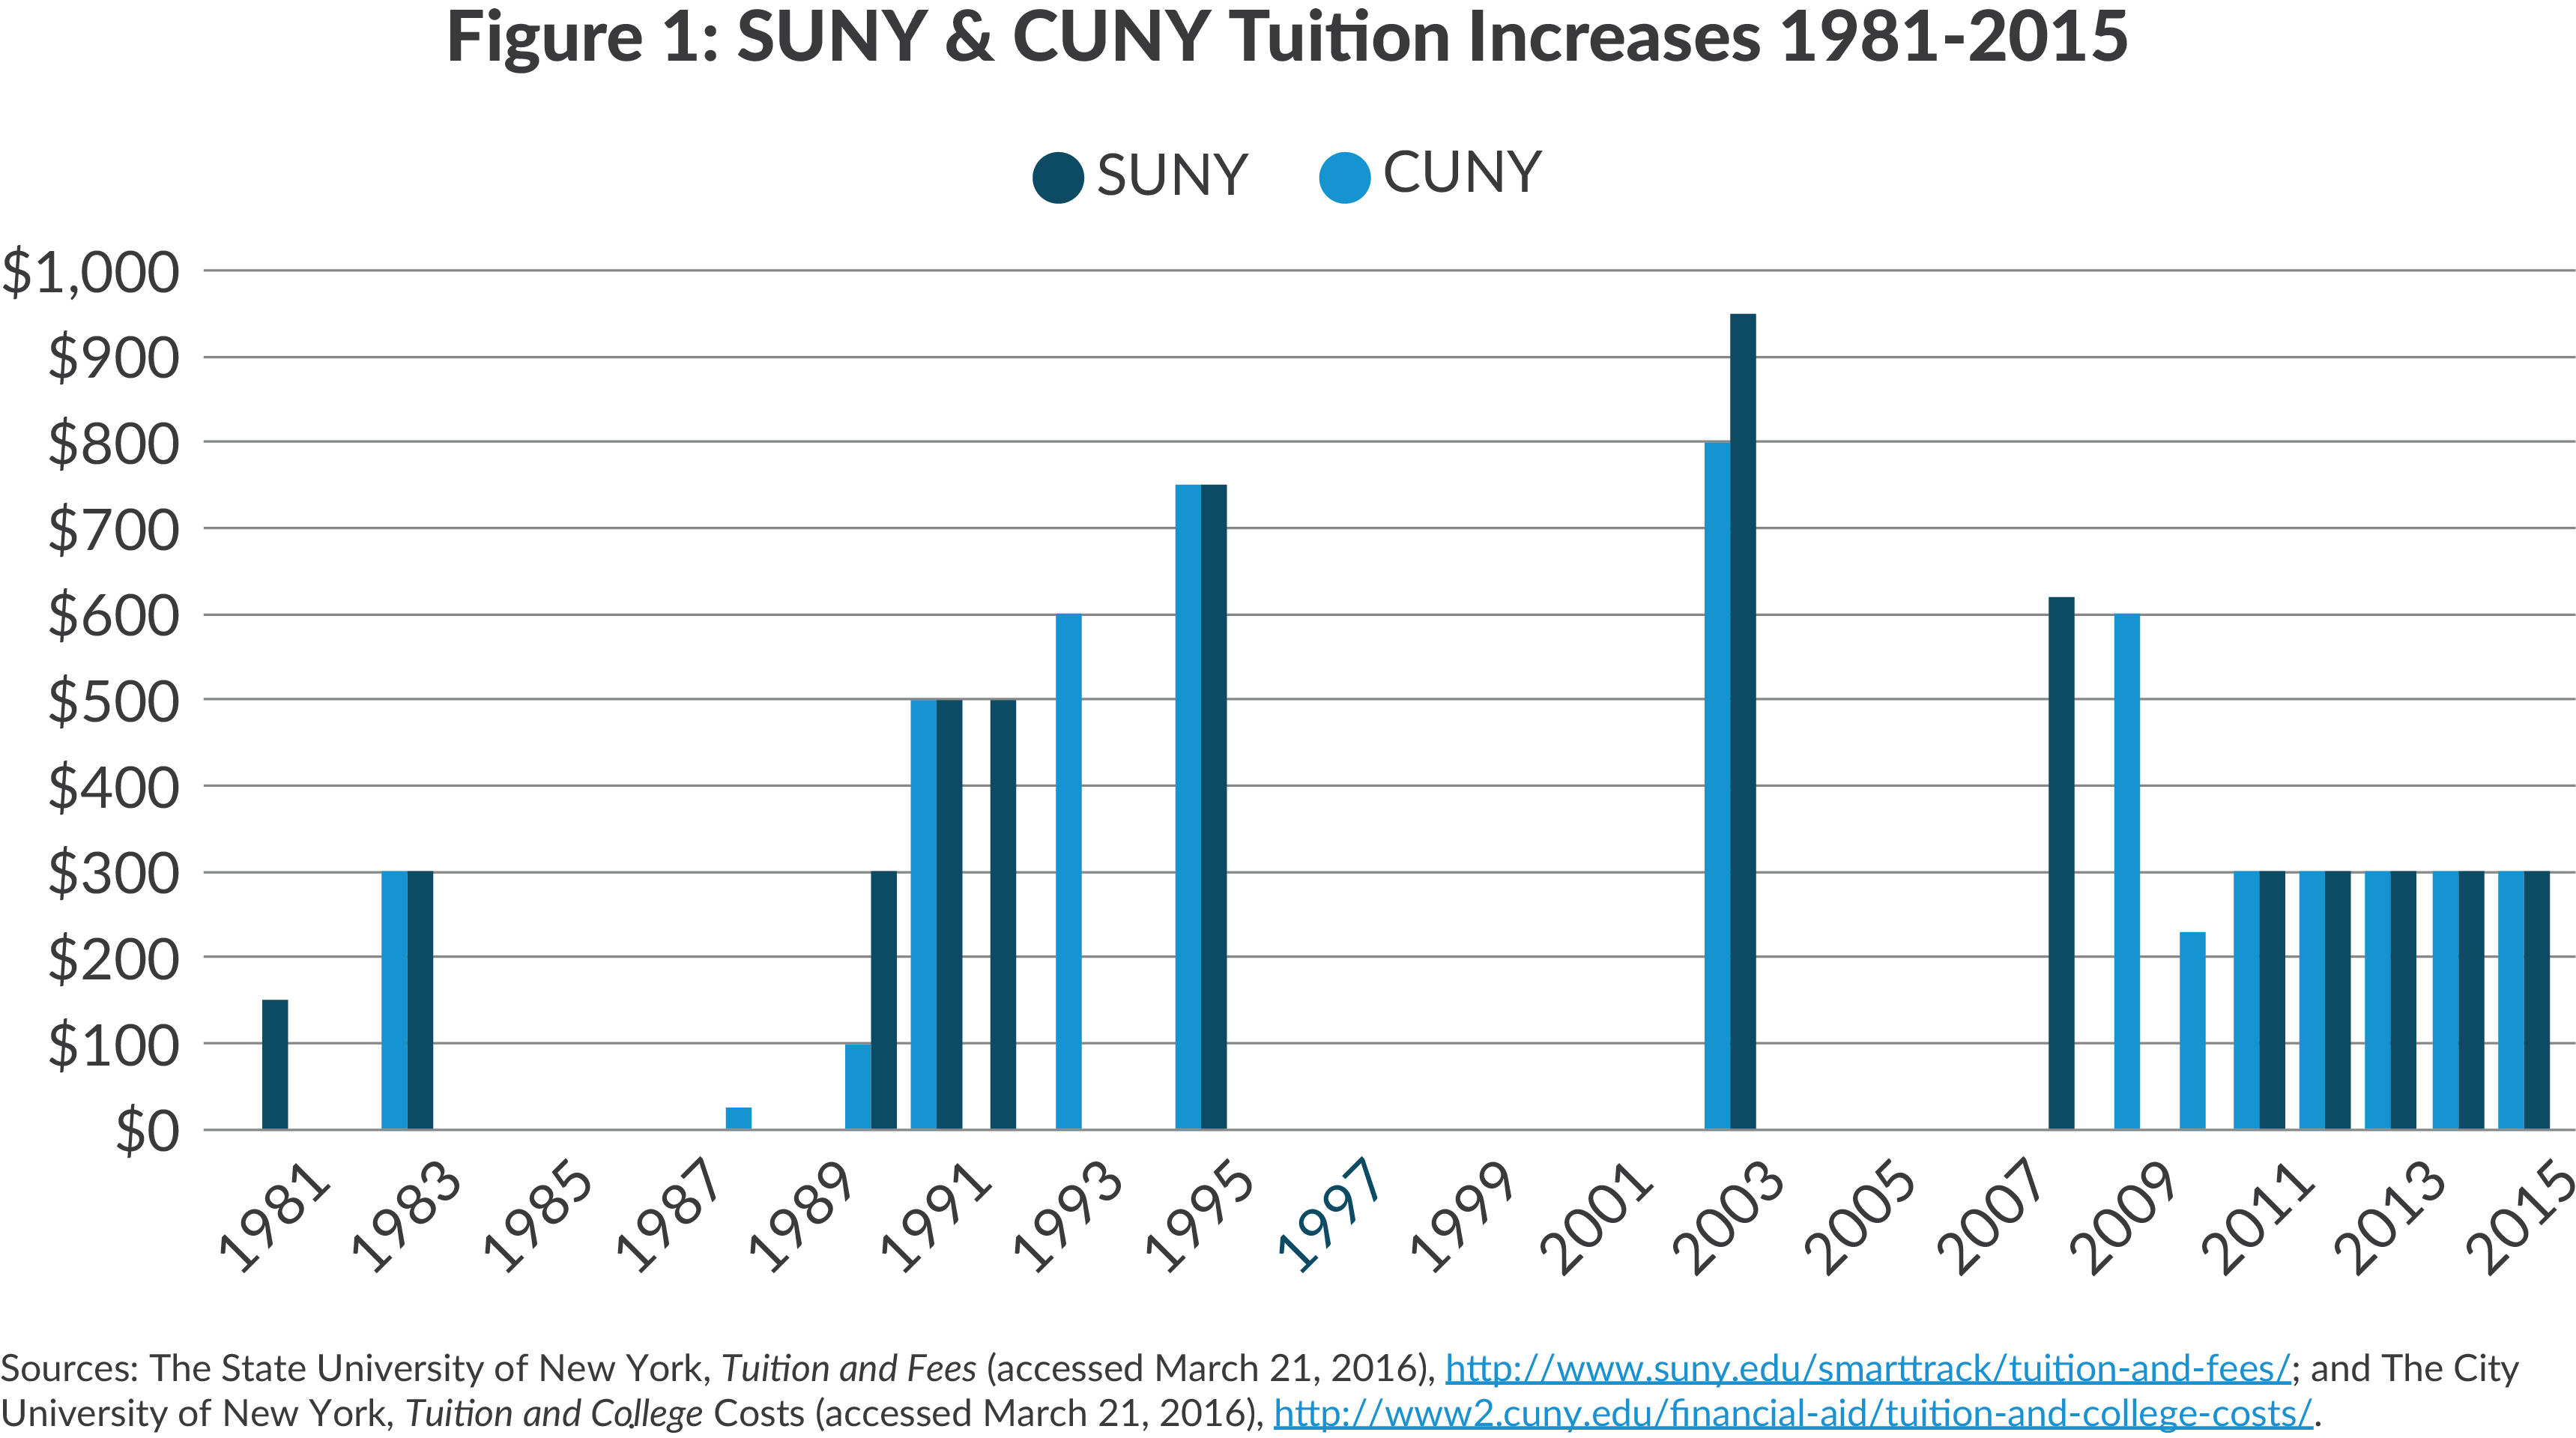 Figure 1: SUNY & CUNY Tuition Increases 1981-2015